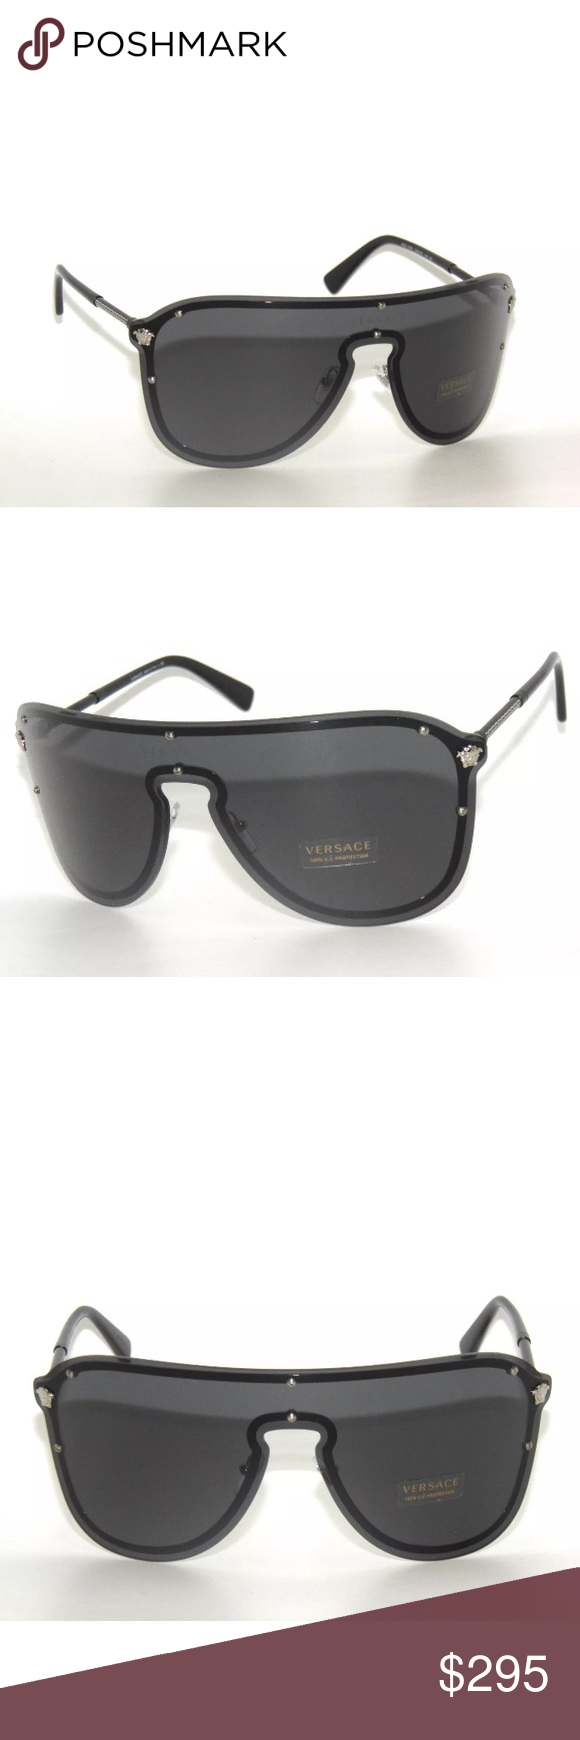 7154c405e97 Versace Sunglasses 2180 silver and grey Brand new Comes with Versace case